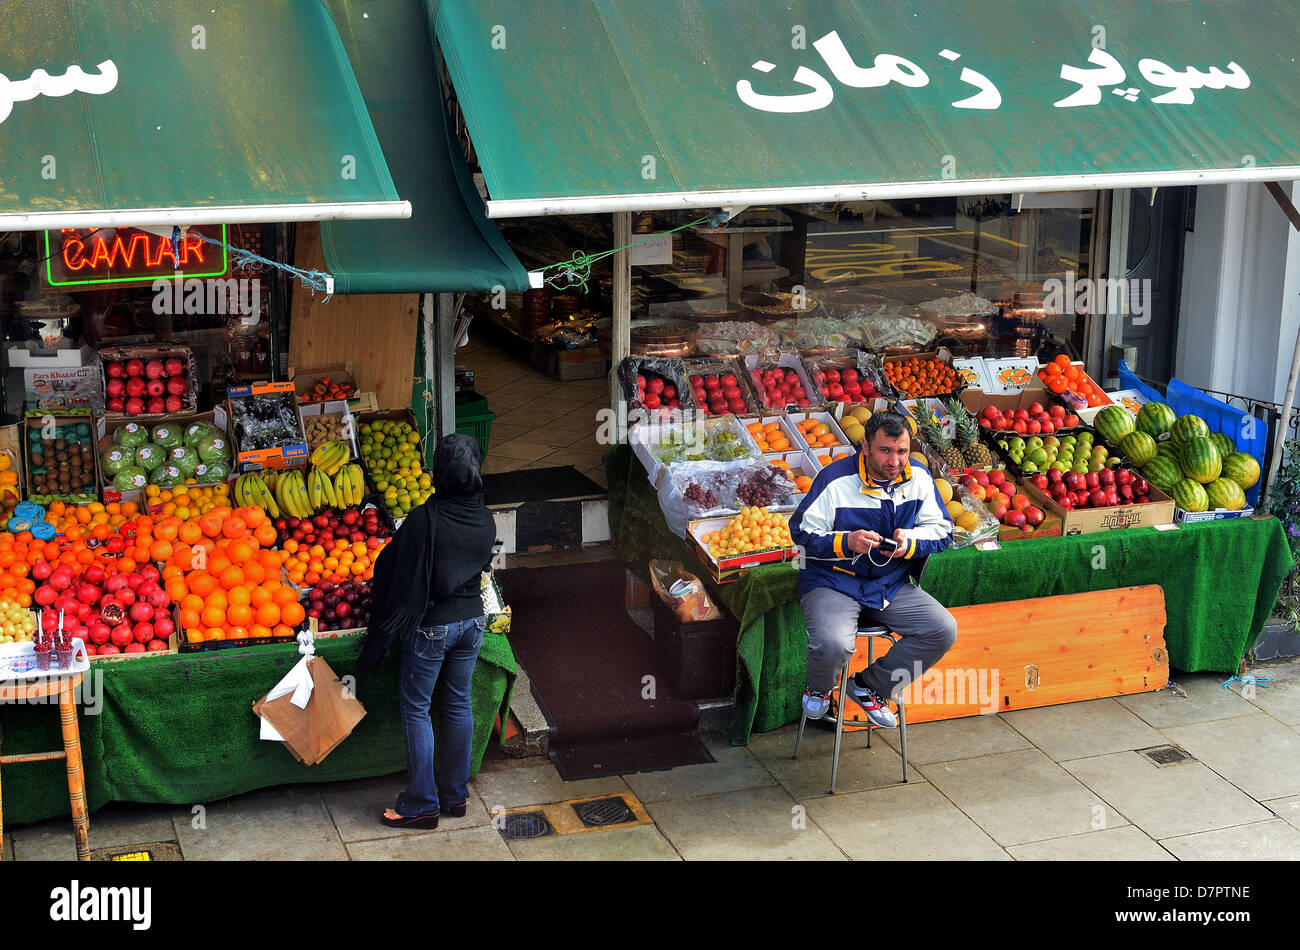 Elevated view of greengrocers shop display - Stock Image